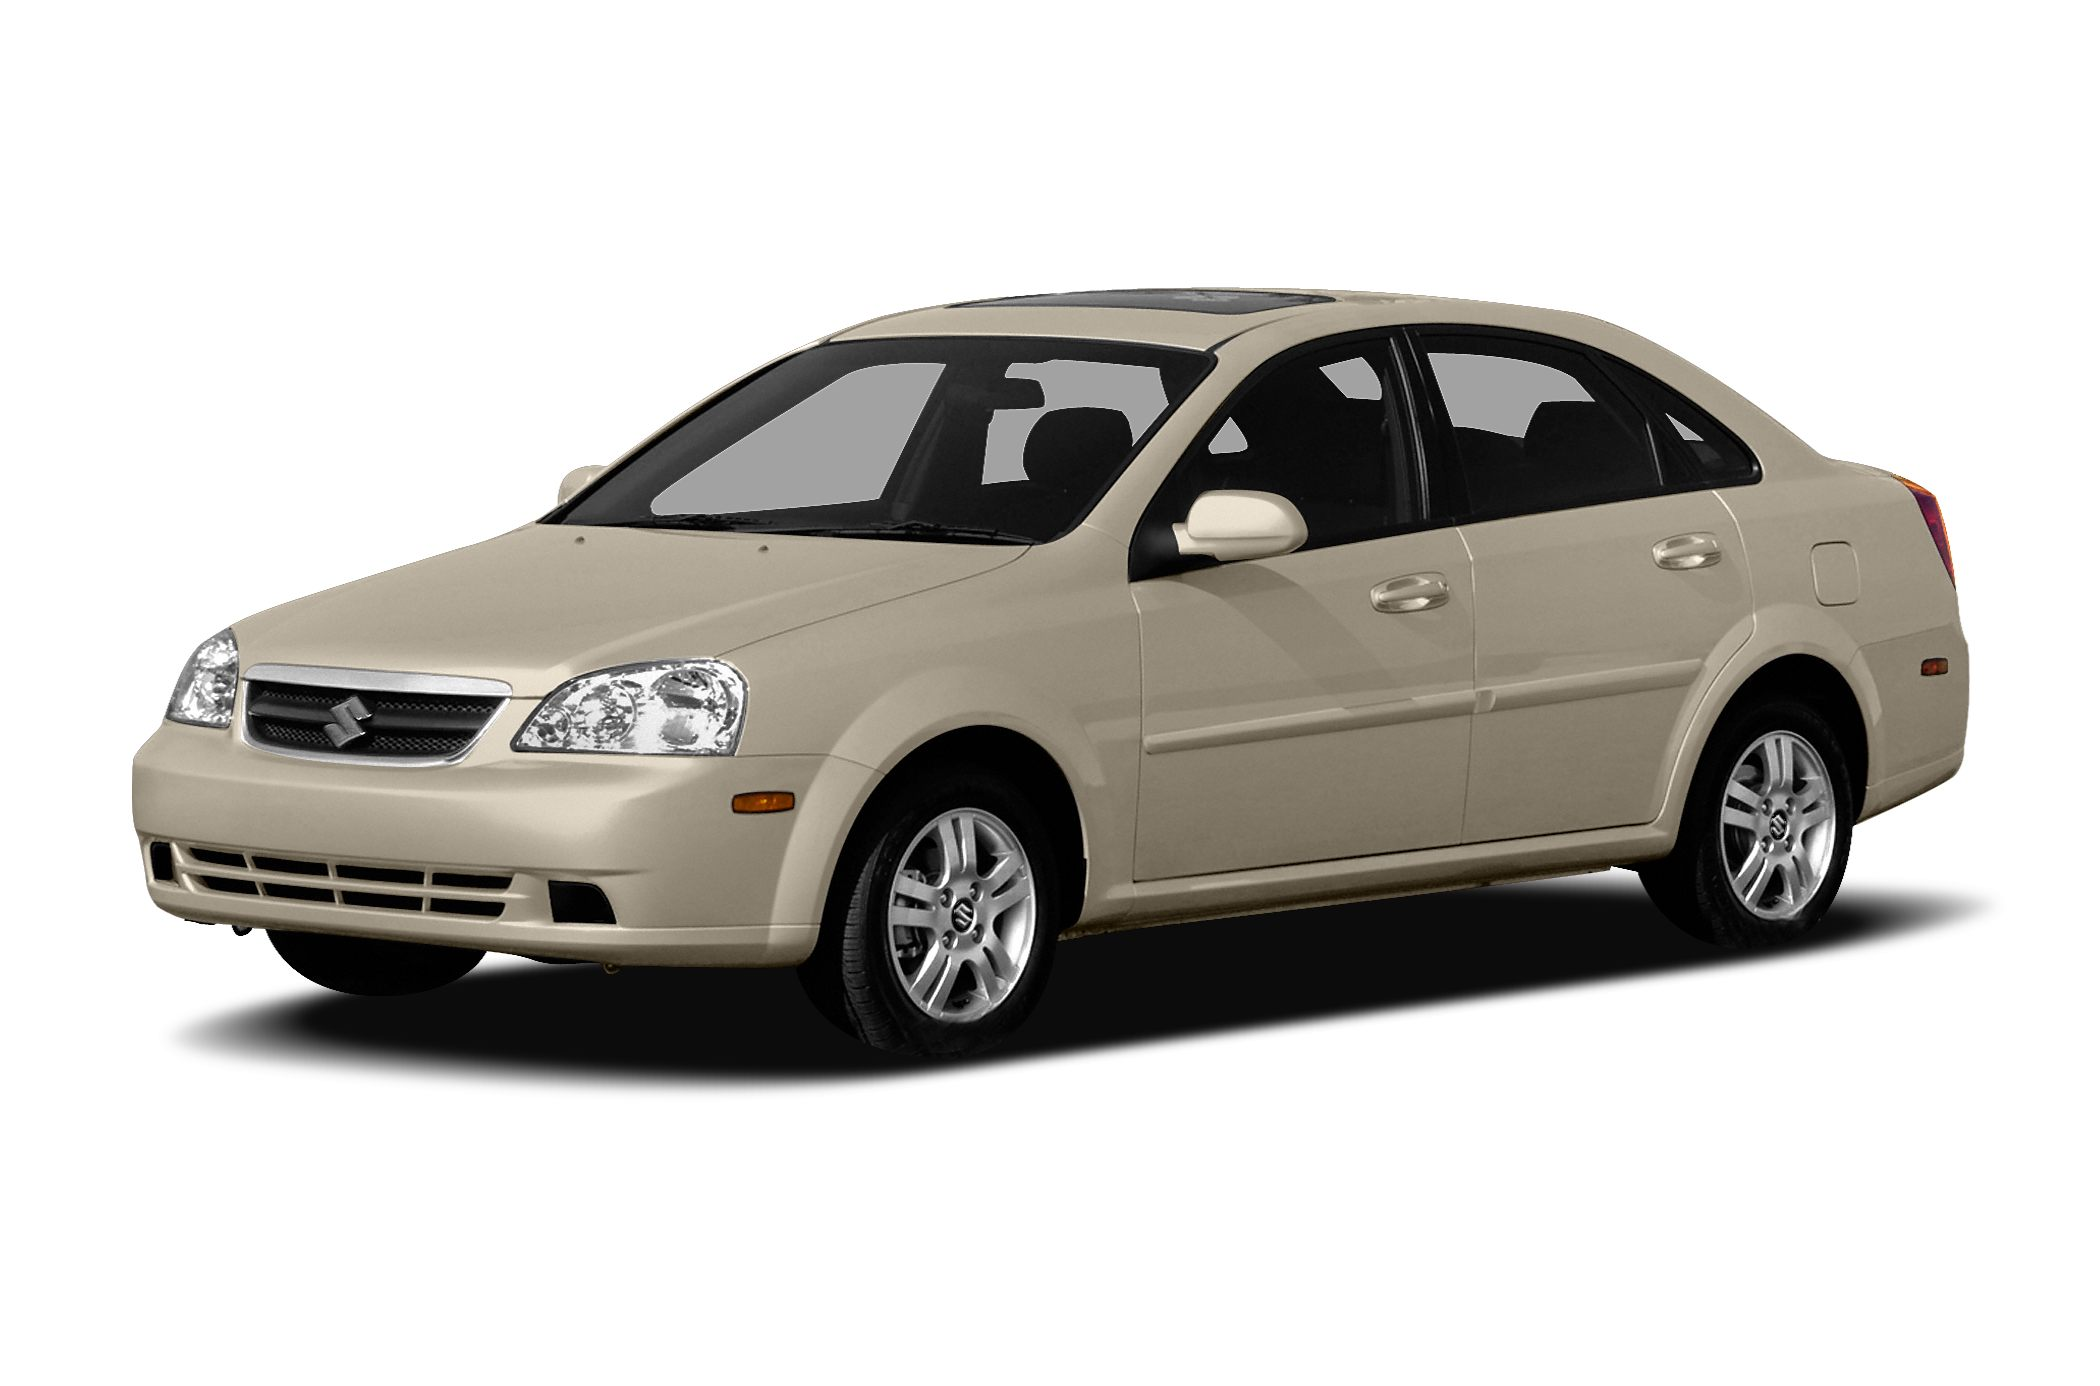 2007 Suzuki Forenza Sedan for sale in Commerce City for $5,995 with 125,815 miles.